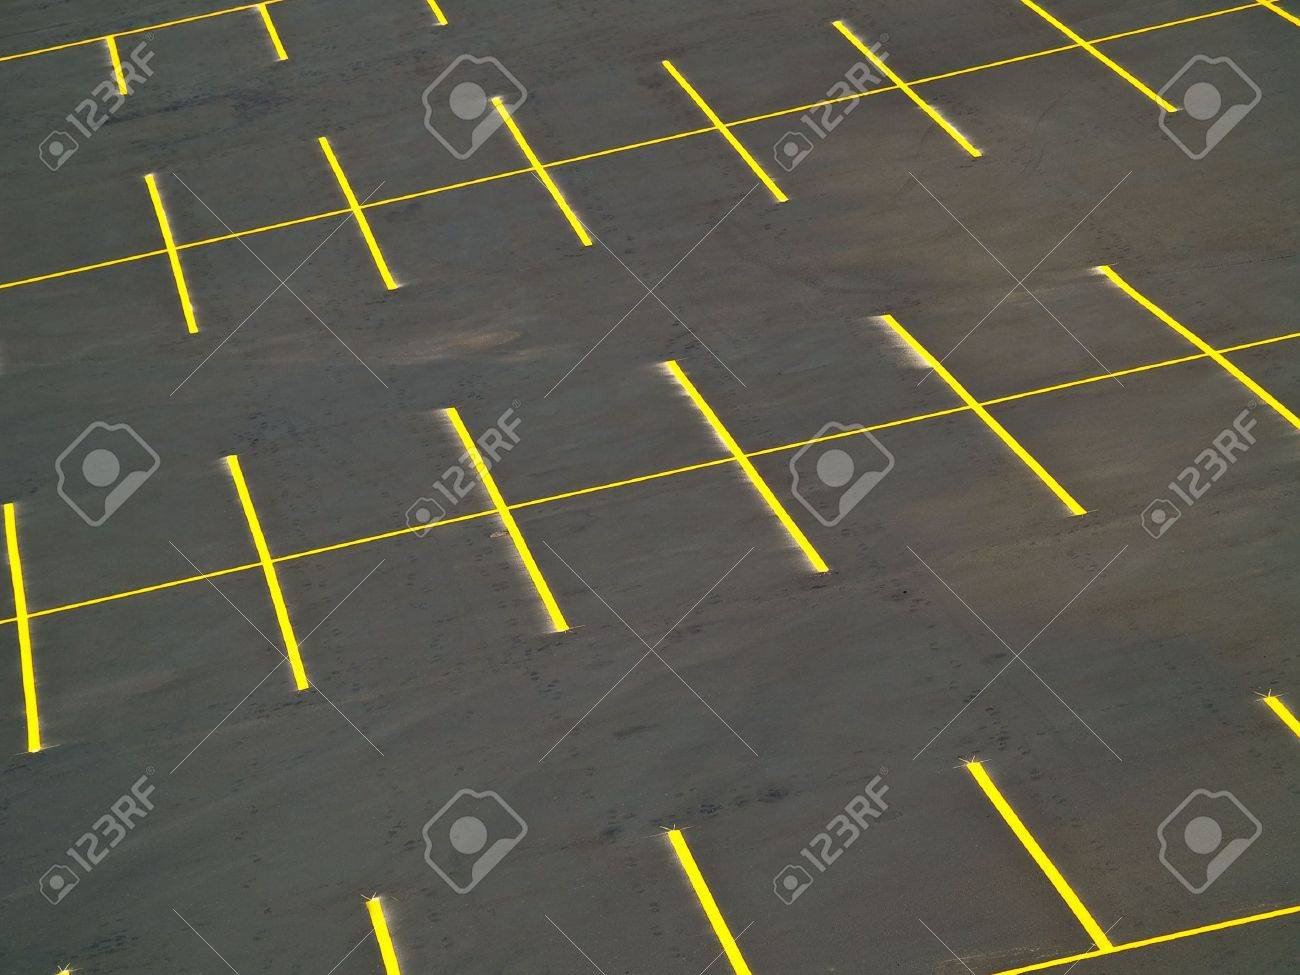 An empty parking lot with a grunge look Stock Photo - 5615635